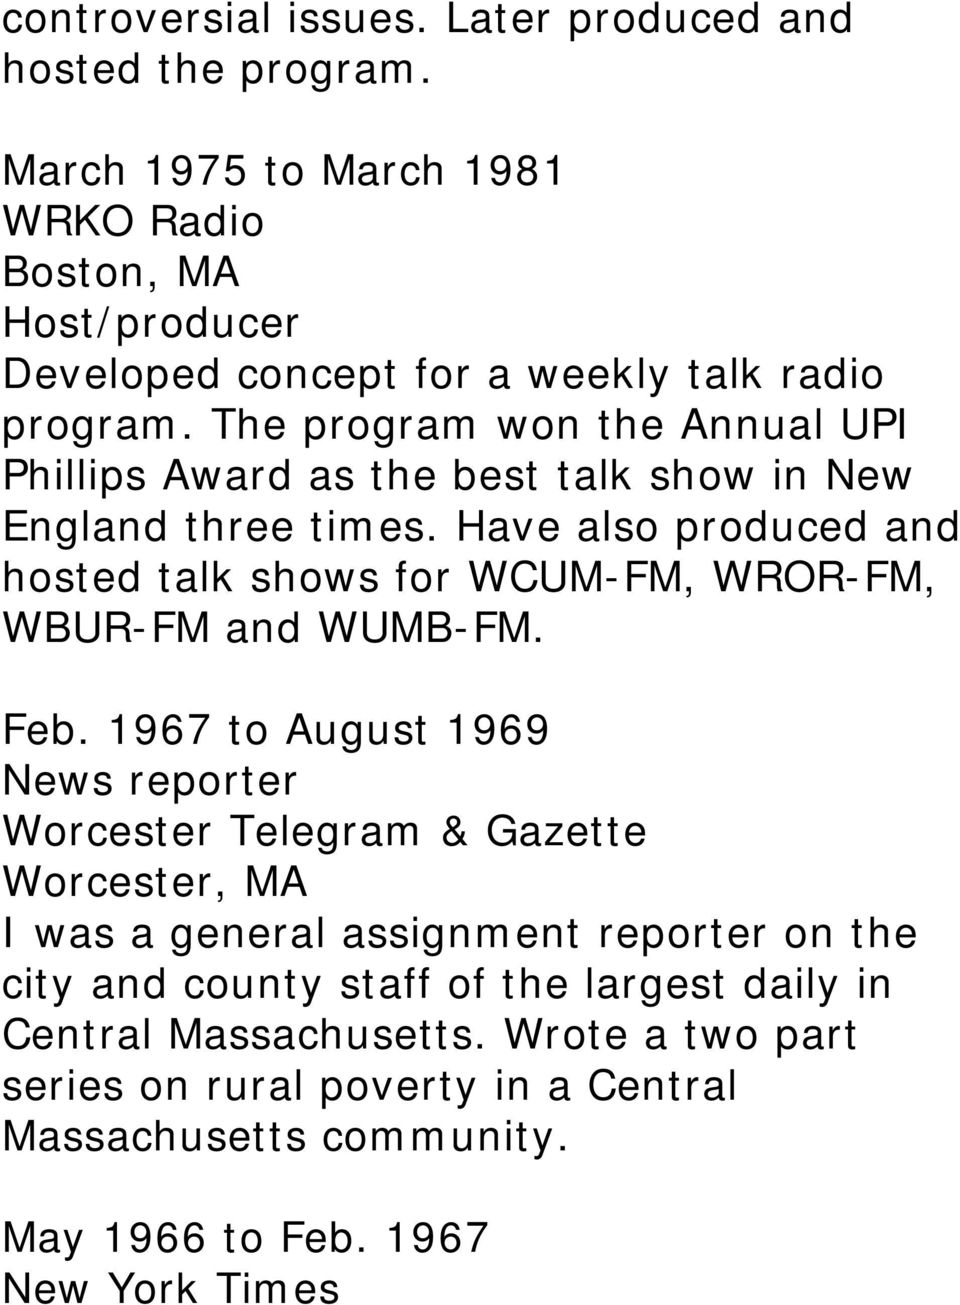 The program won the Annual UPI Phillips Award as the best talk show in New England three times.